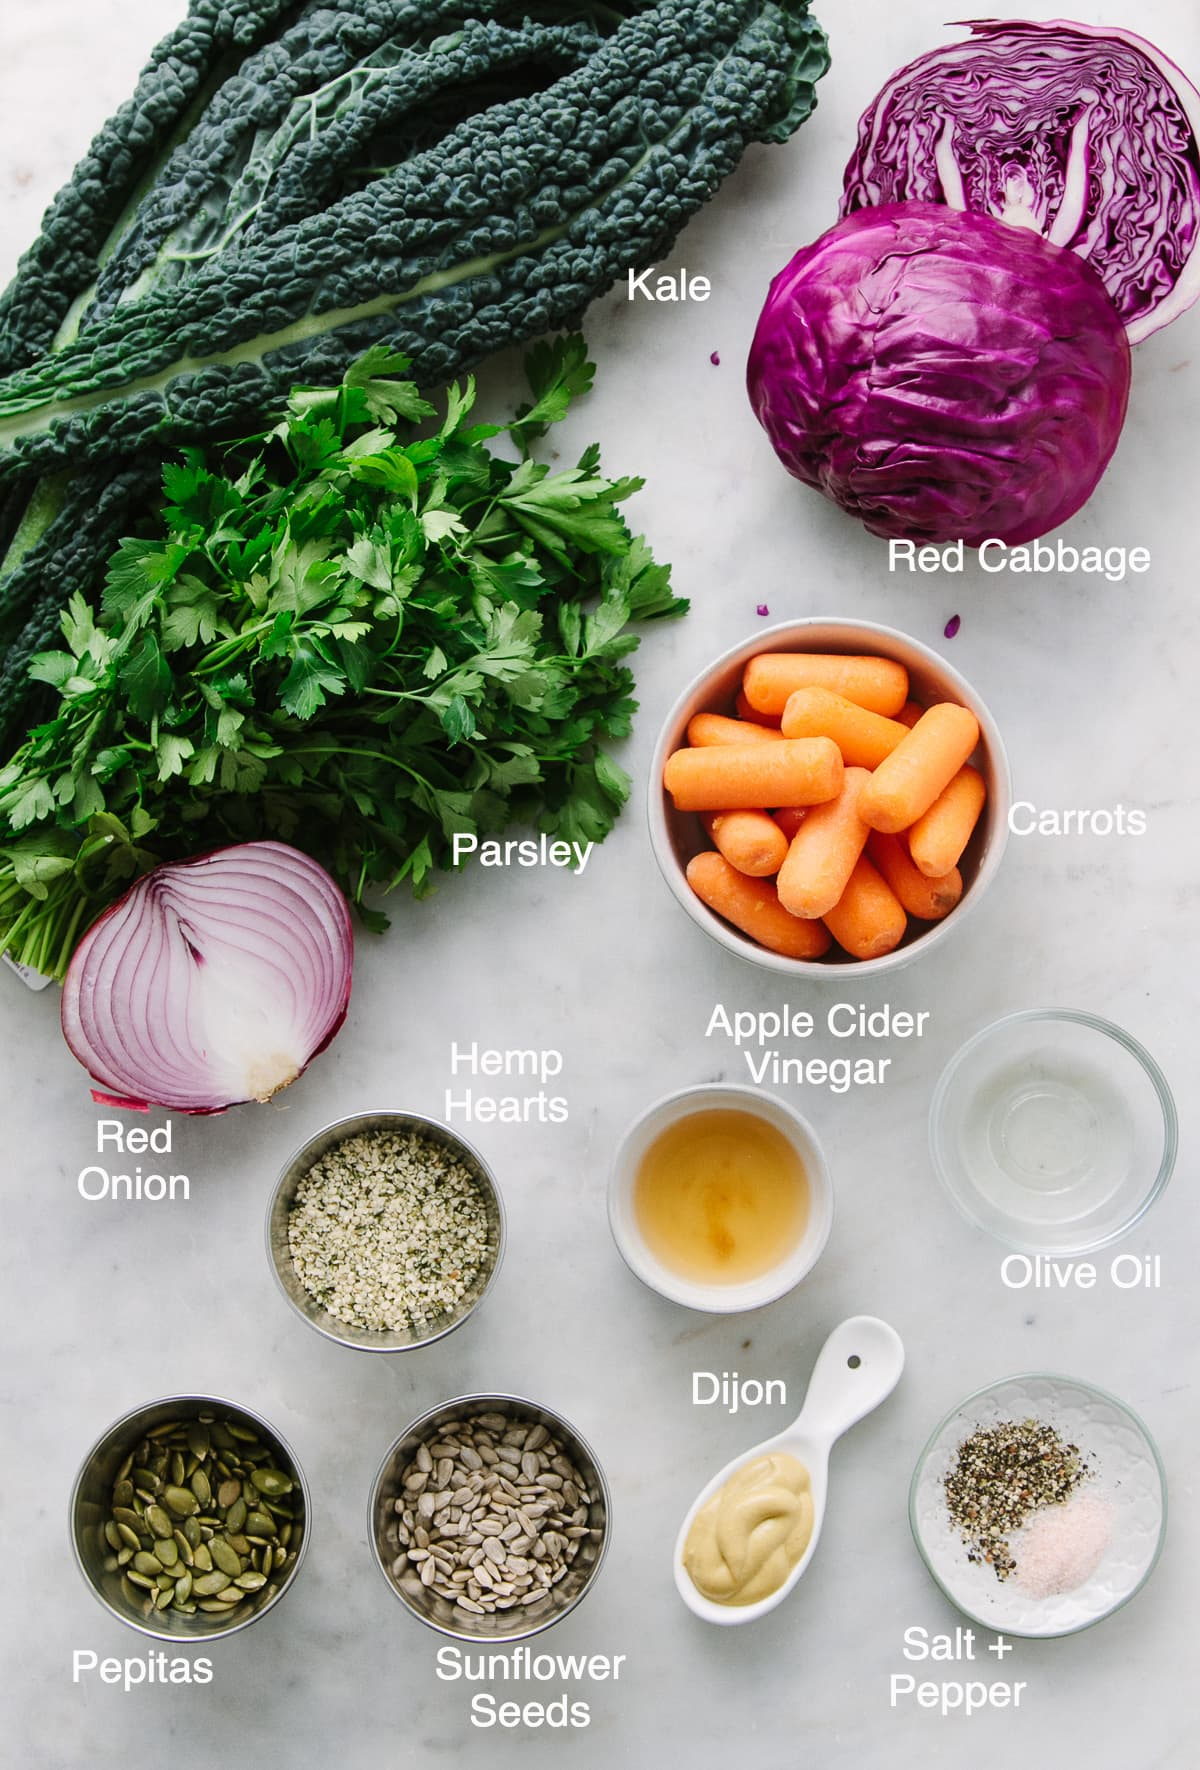 top down view of ingredients used to make kale and red cabbage slaw recipe.